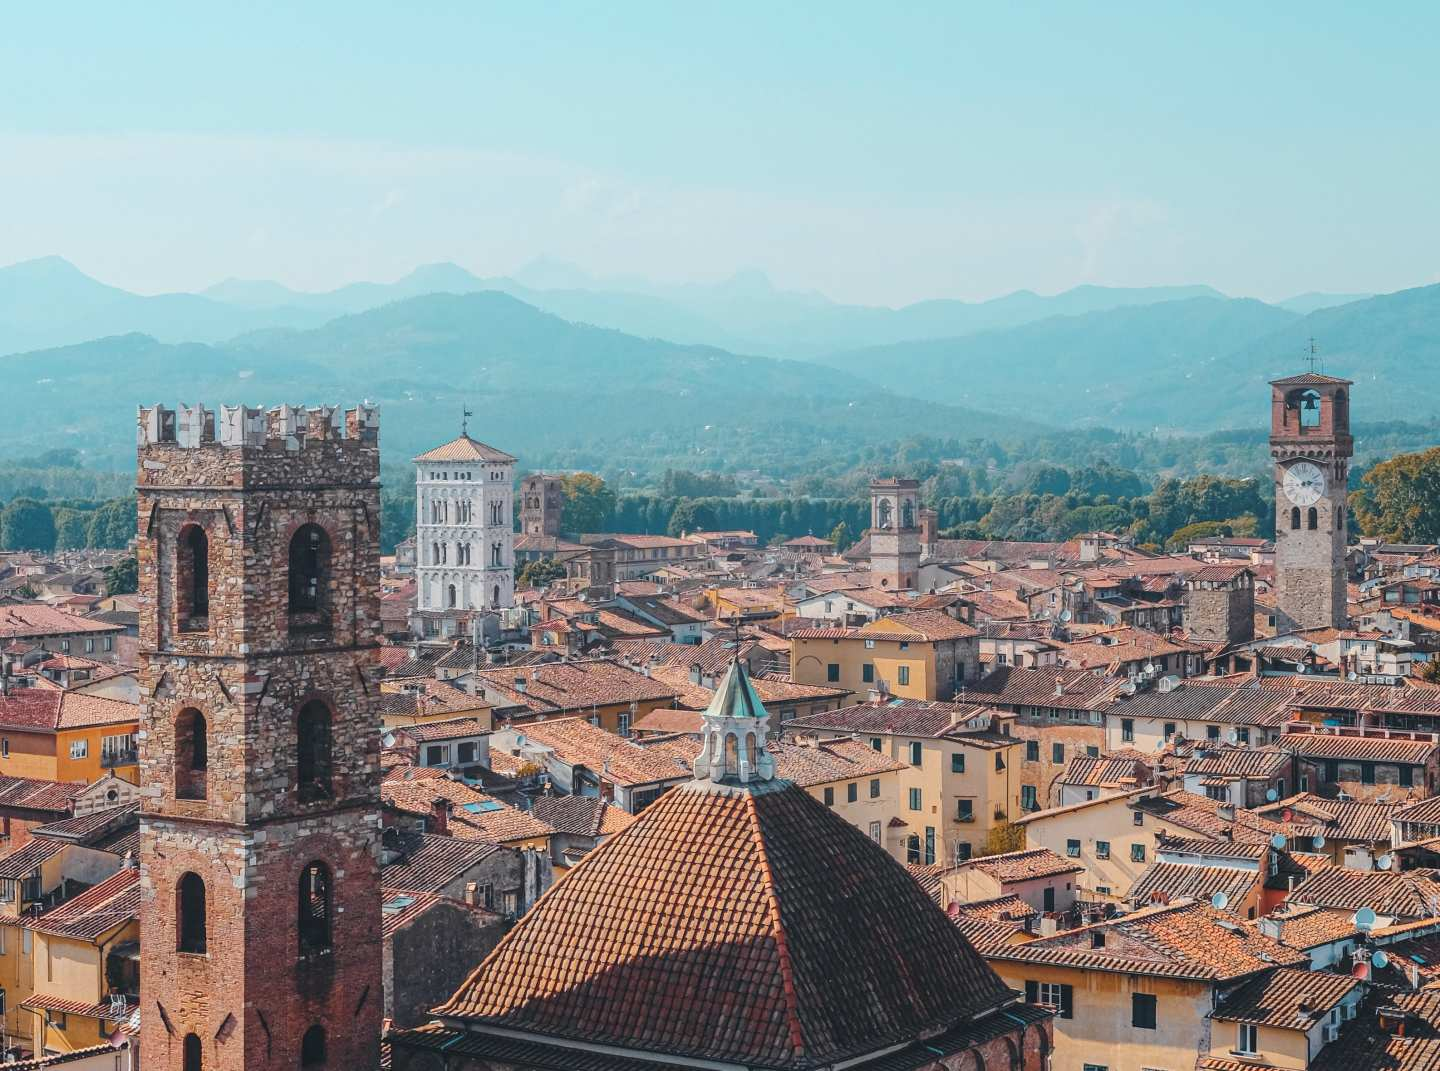 Lucca - banner image